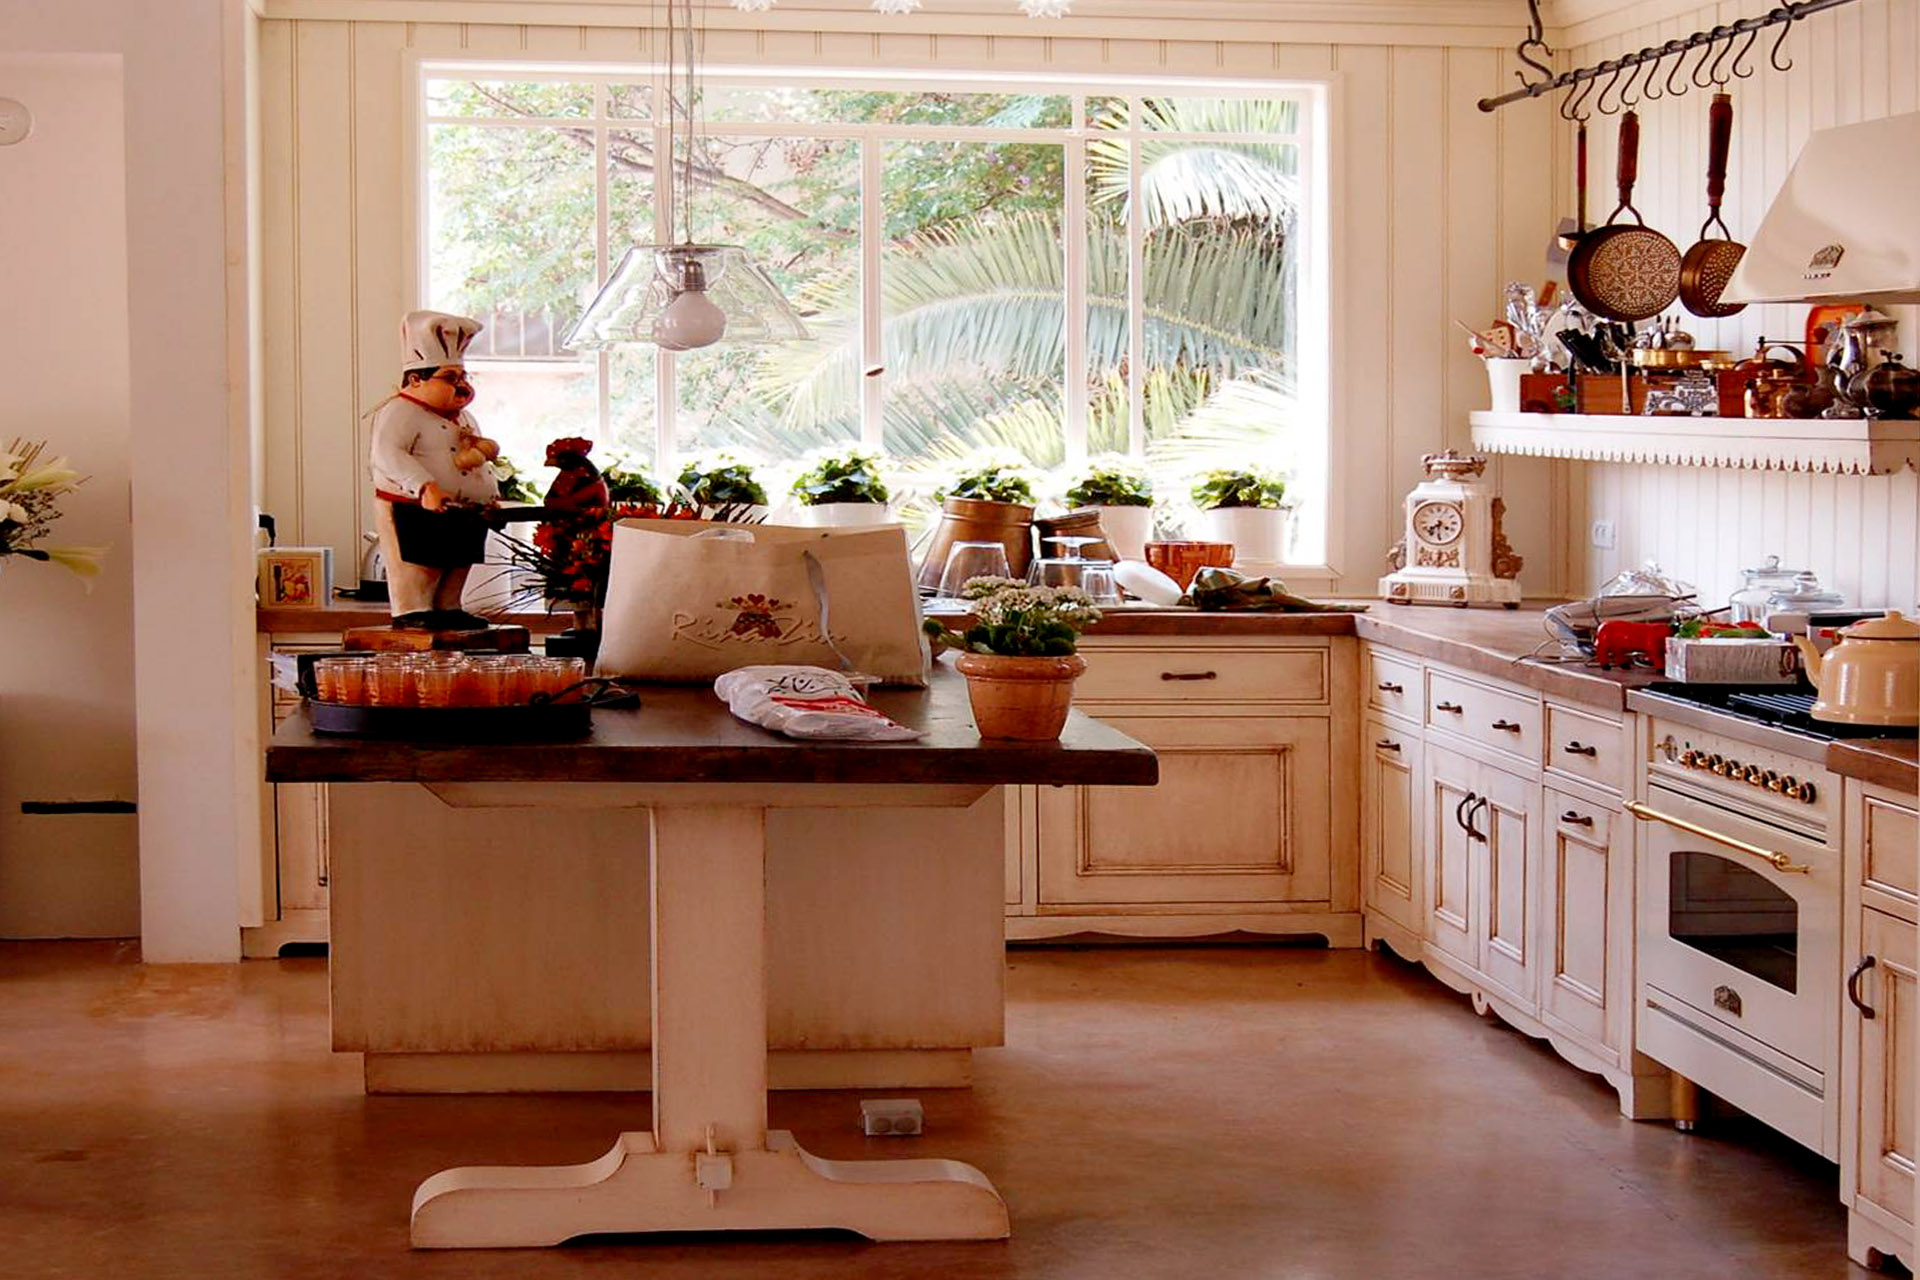 kitchens madera miriam s kitchen this kitchen was designed to bring provence into the house the kitchen was painted in cream with patina with additions of various design